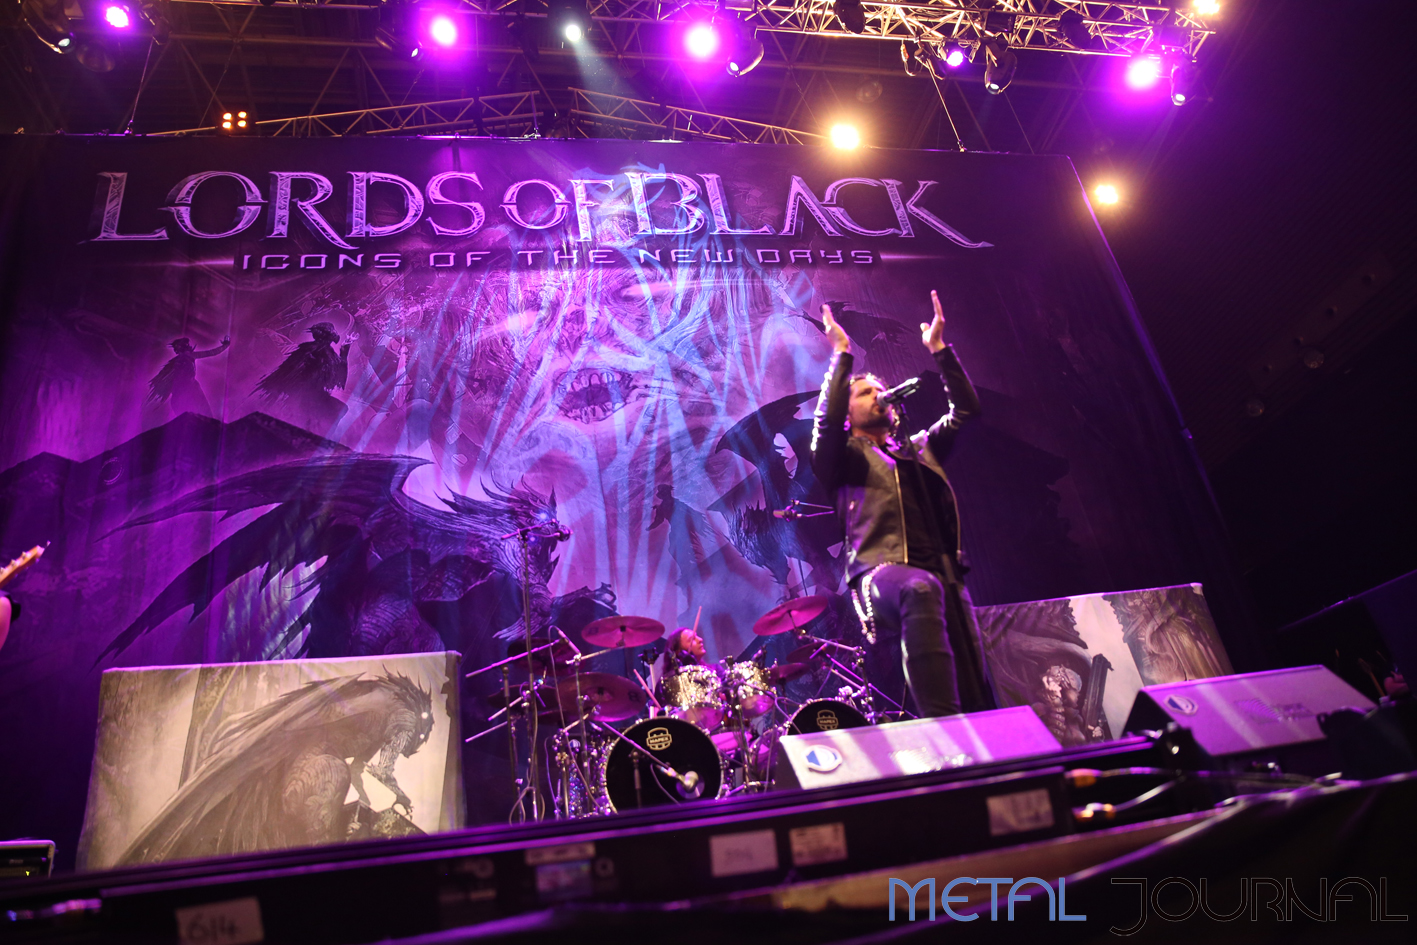 lords of black - metal journal barakaldo 2018 pic 4